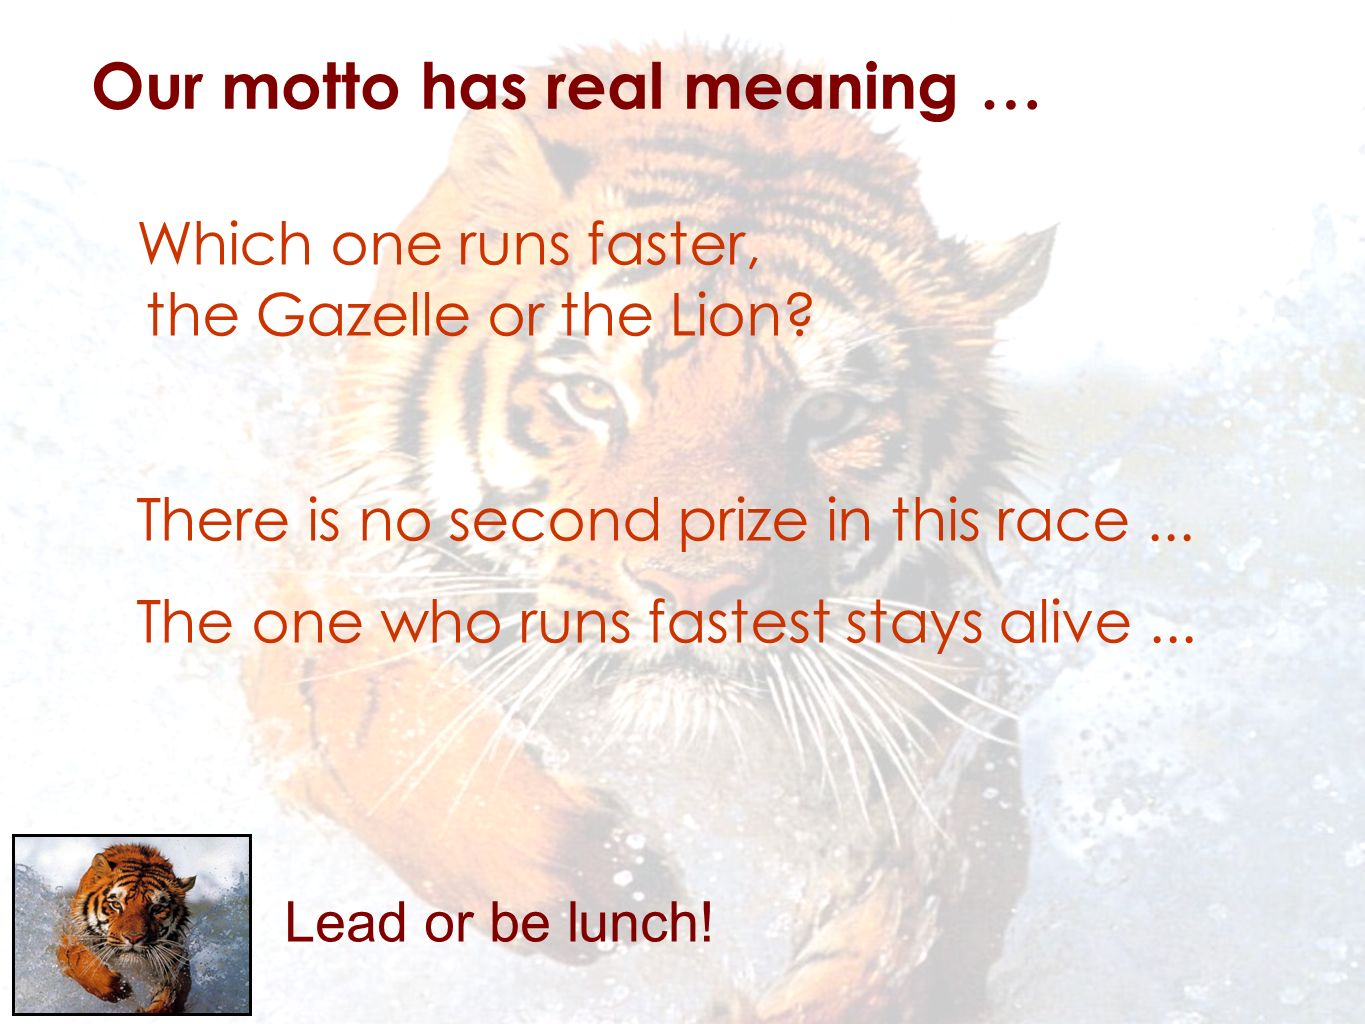 Lead or be lunch. Our motto has real meaning … Which one runs faster, the Gazelle or the Lion.